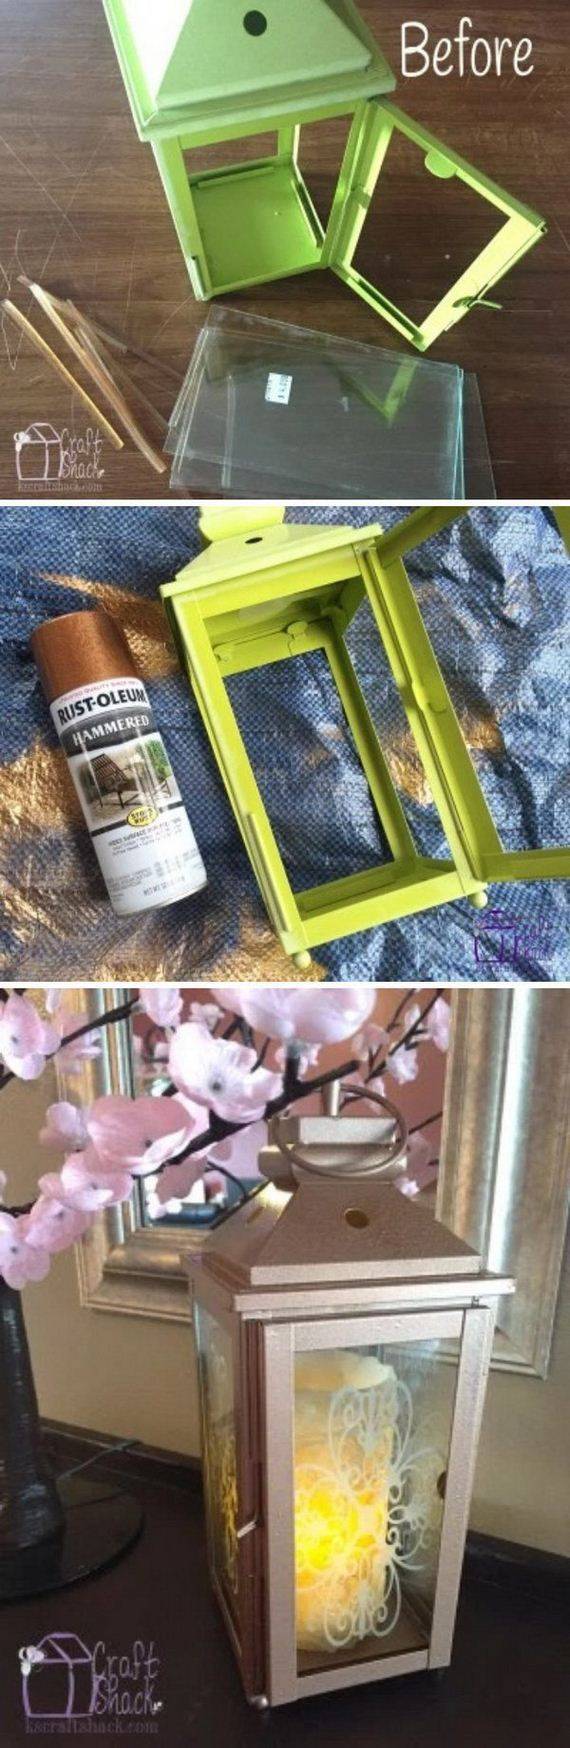 32-spray-paint-ideas